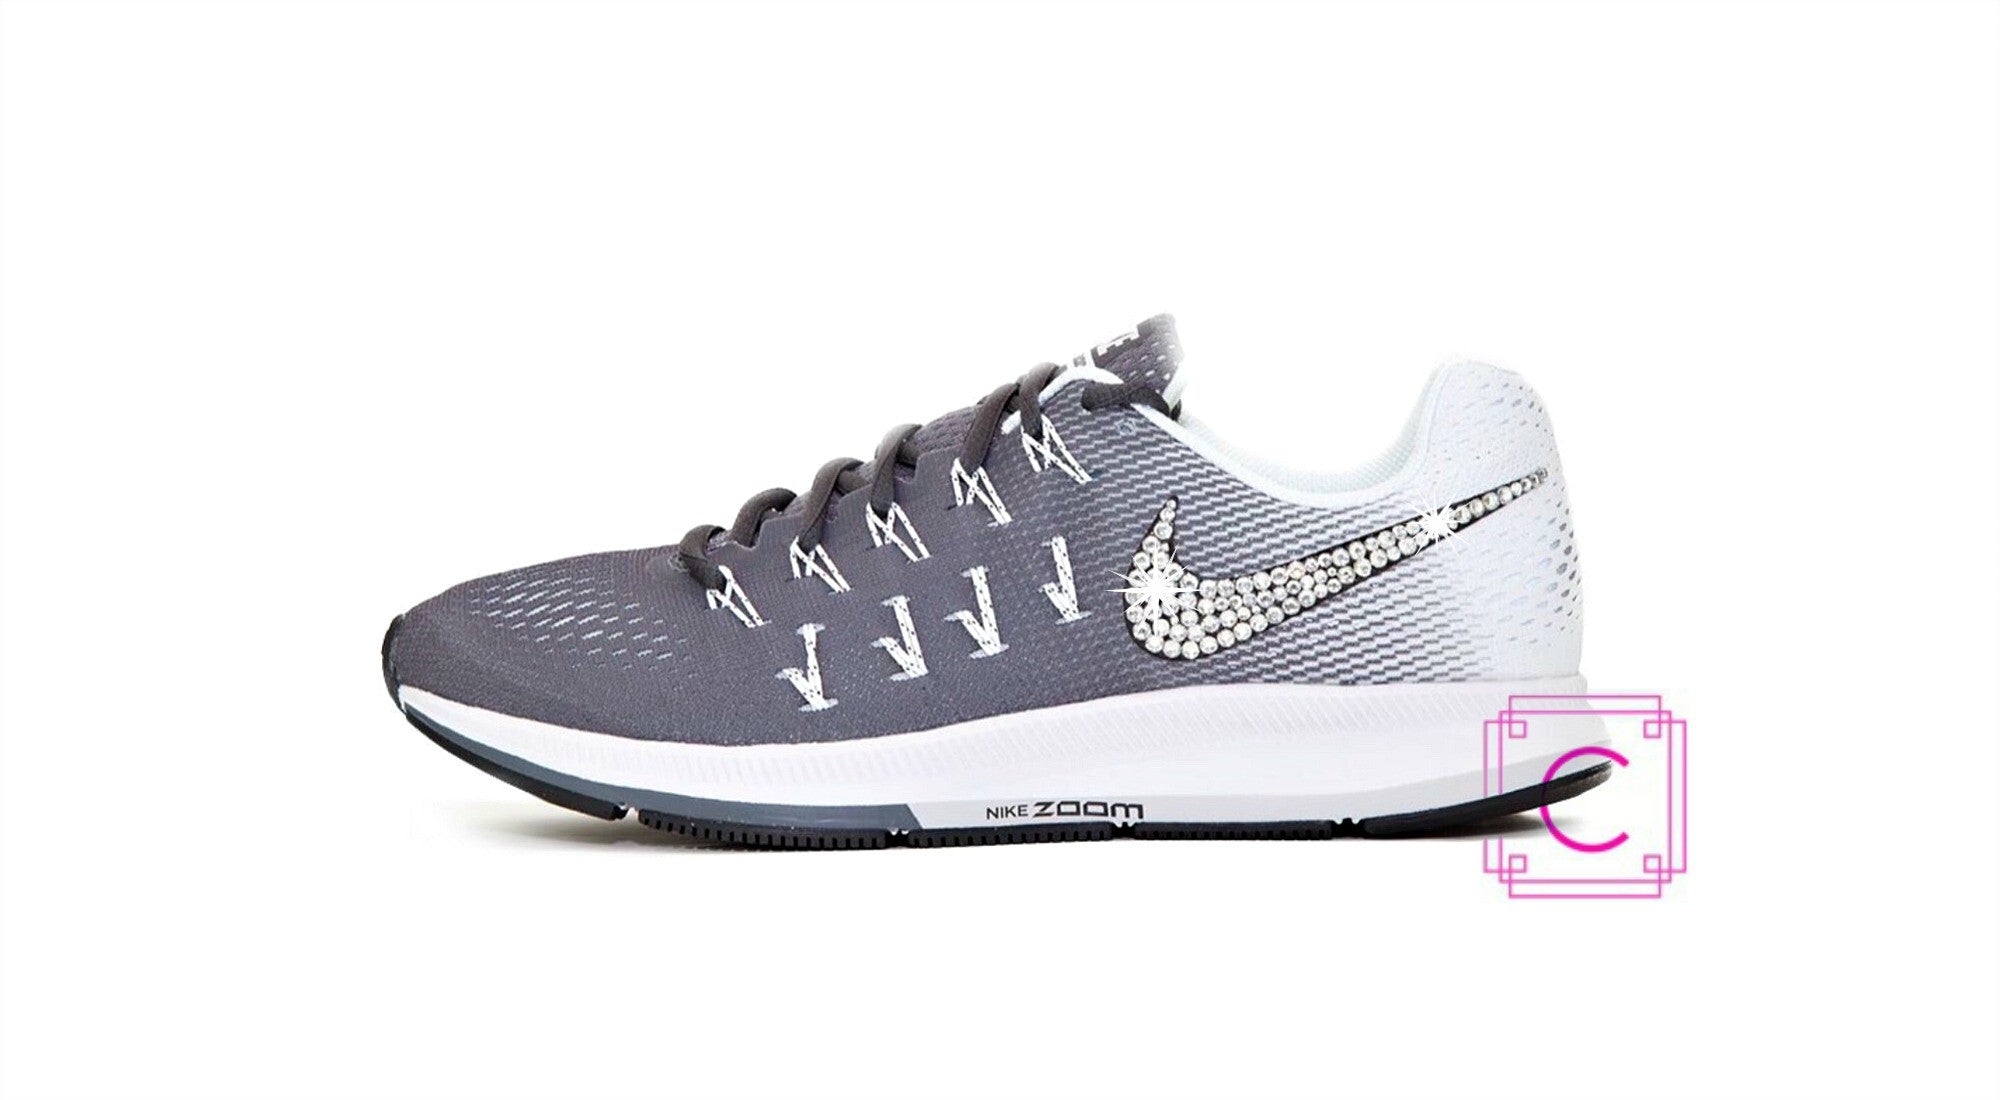 Women's Nike Zoom Pegasus 33 in Dark Grey/White/Black w/SWAROVSKI® Crystal details - CRYSTAHHLED